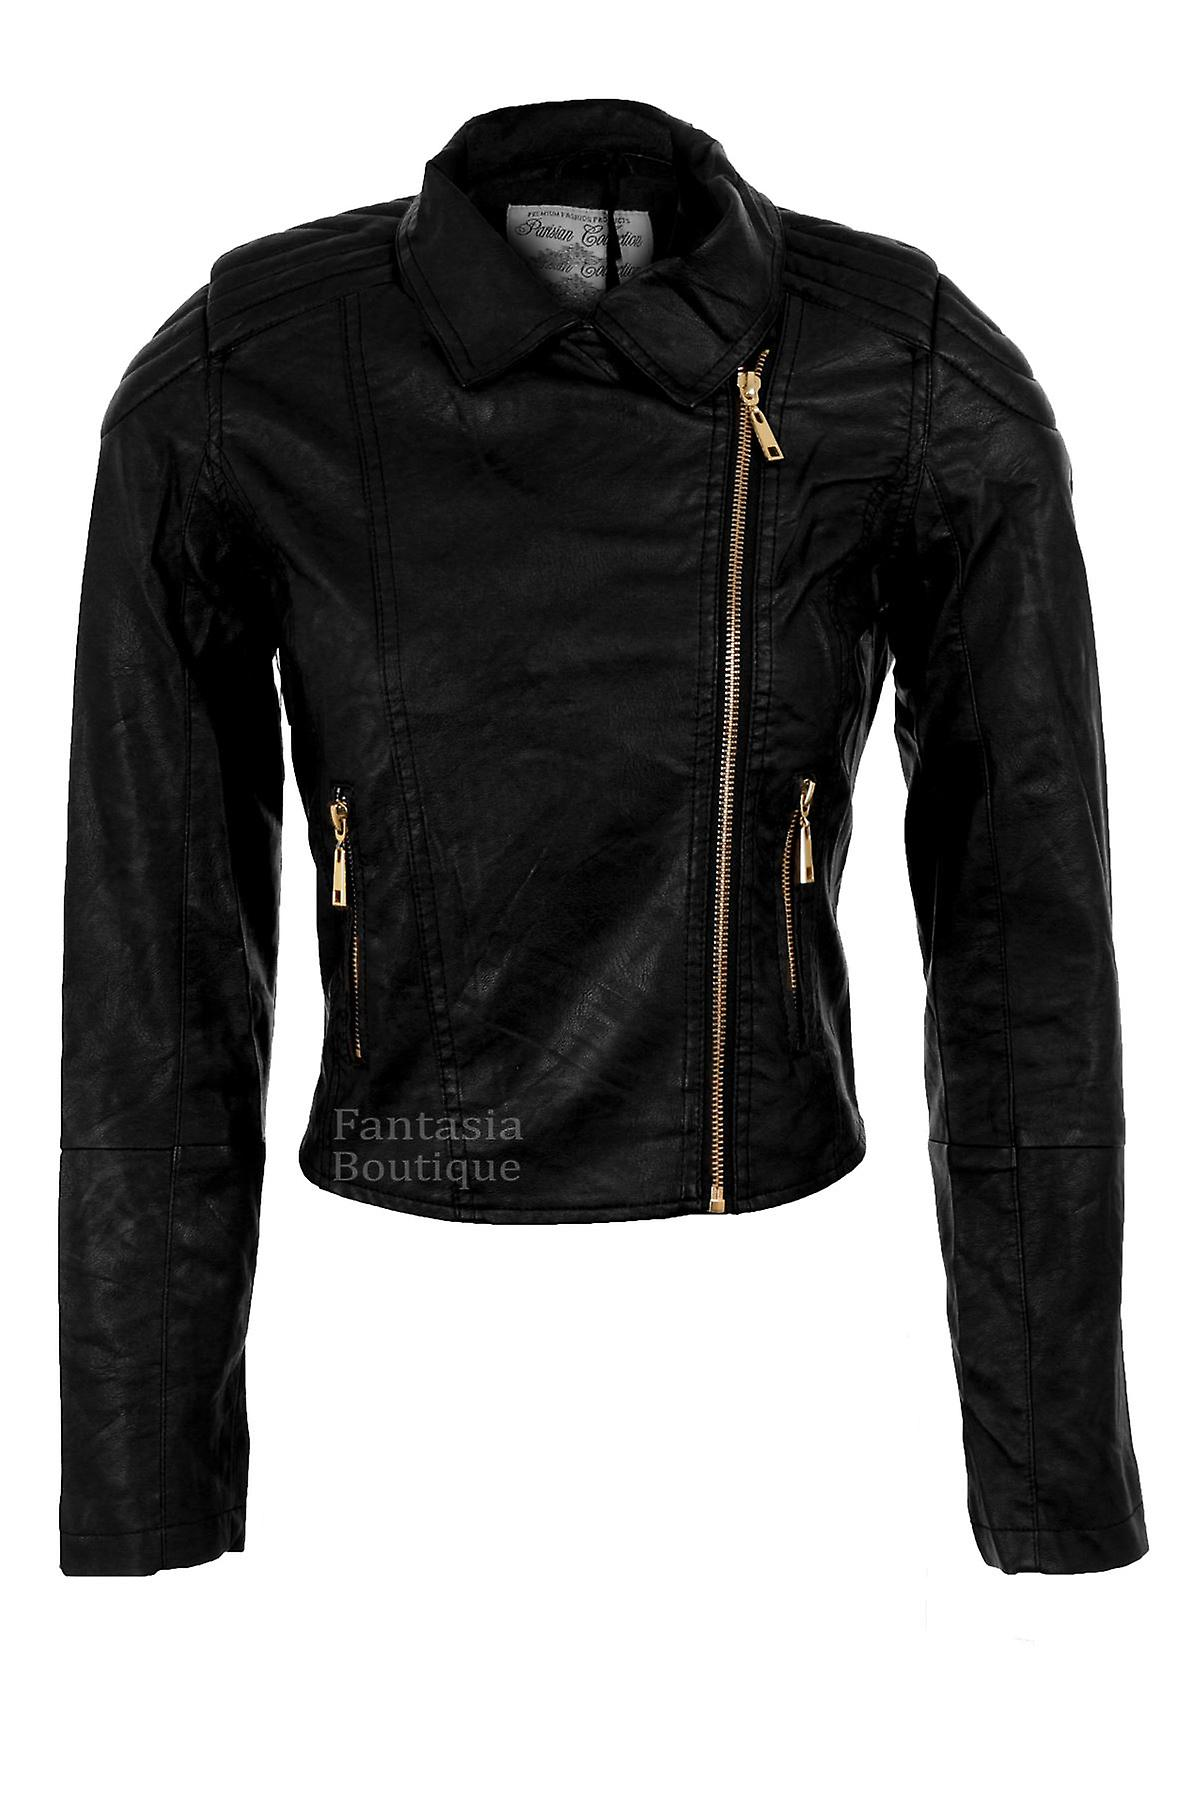 Ladies Black Biker Jacket Gold Zip PVC Leather Padded Shoulder Long Sleeve Women's Coat